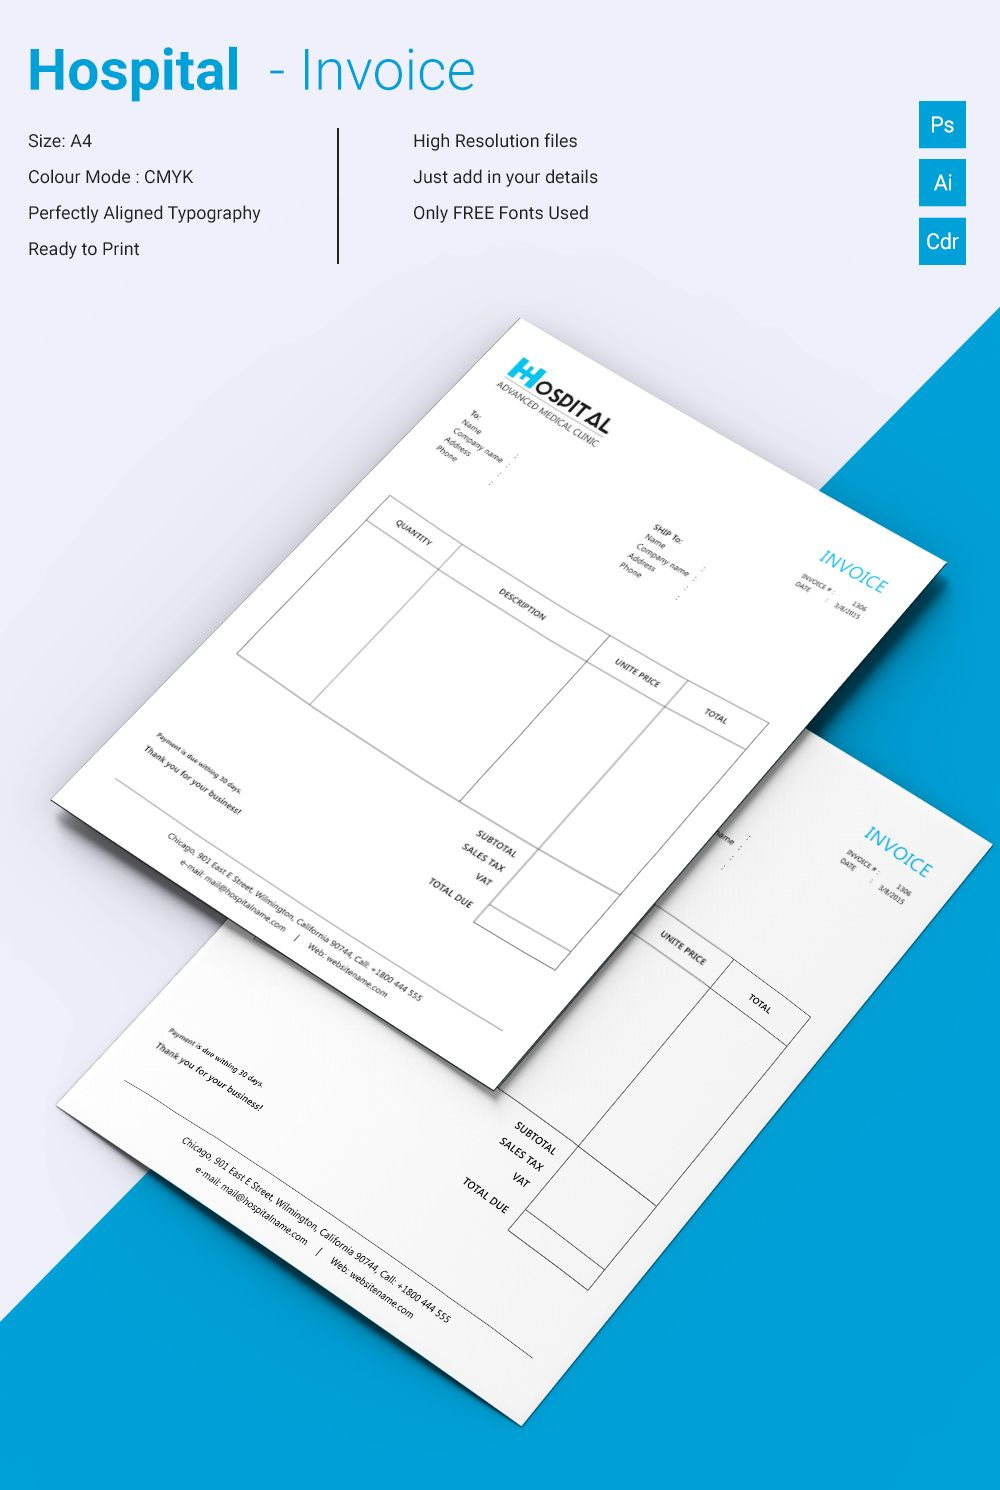 Mac Invoice Template Invoice Software For Mac Free Free Invoice - Invoice template word download universal studios store online